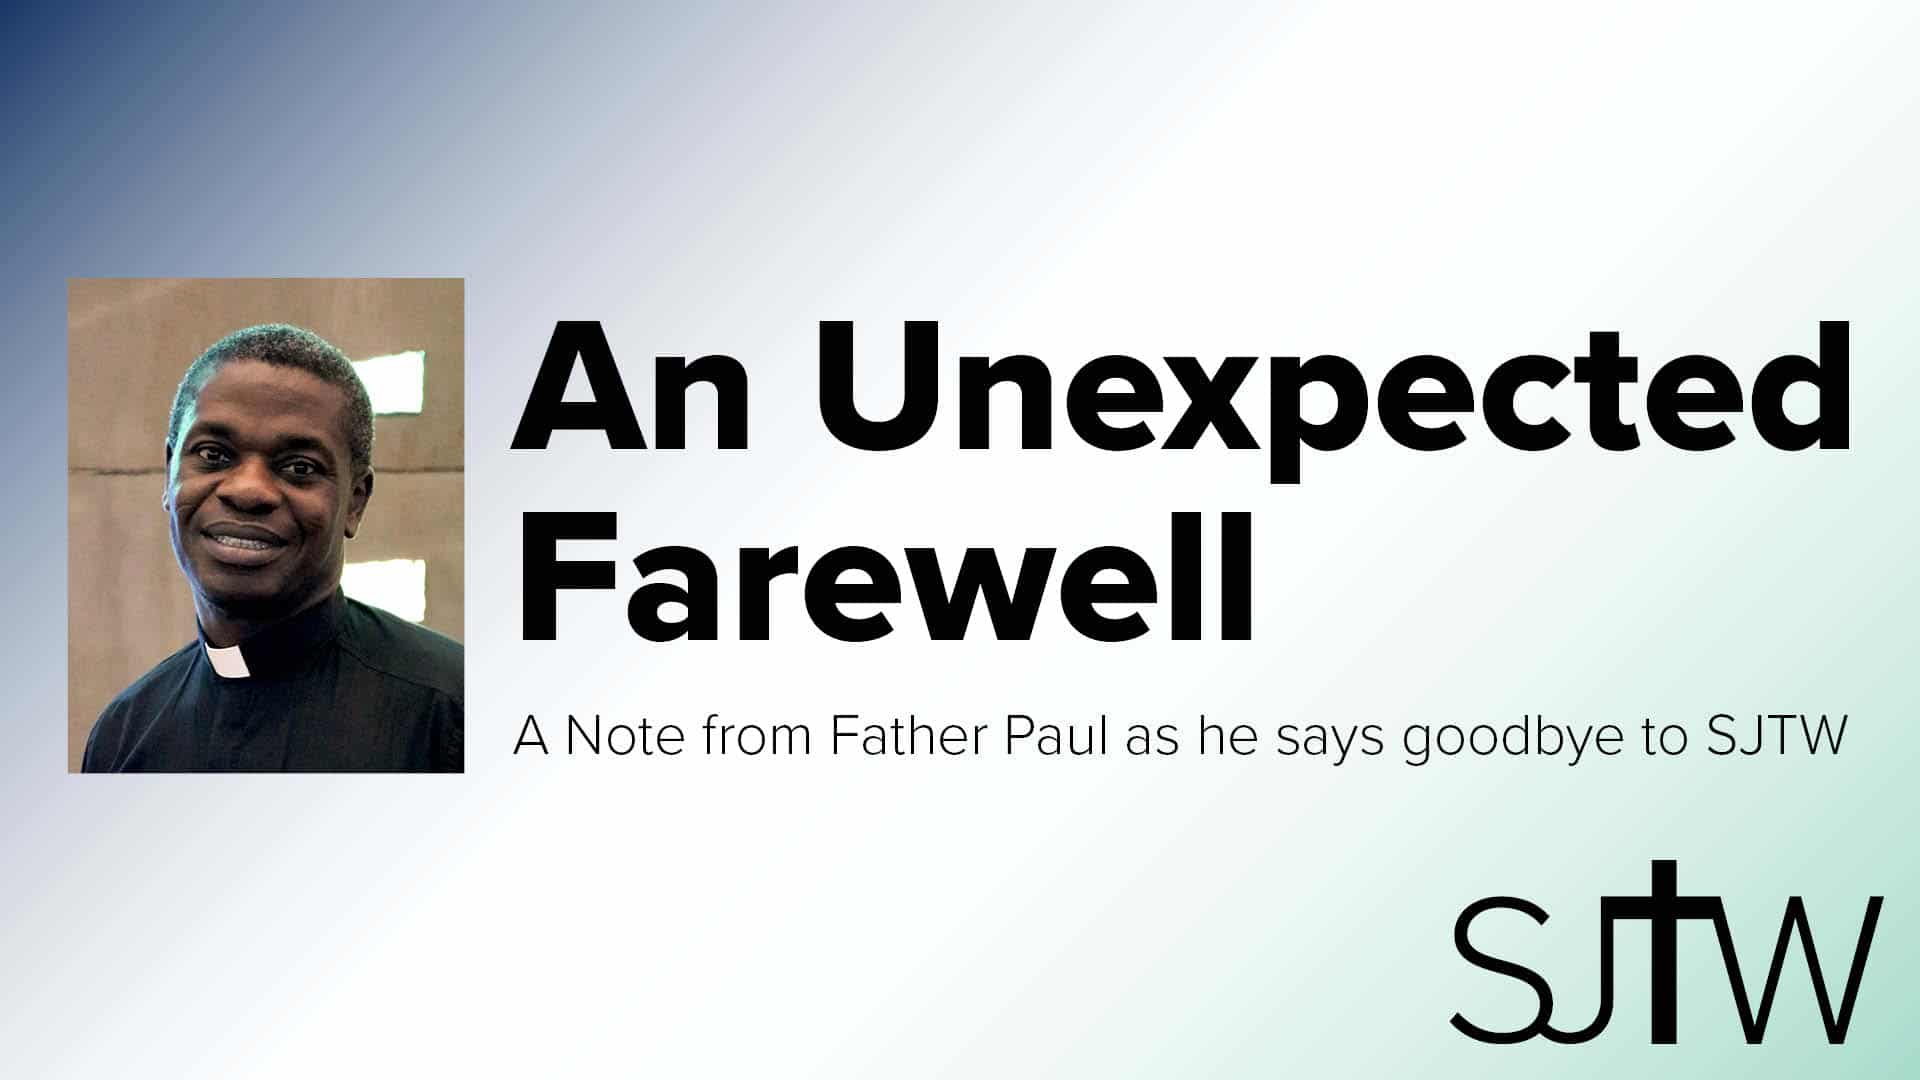 Saying Farewell to Fr. Paul